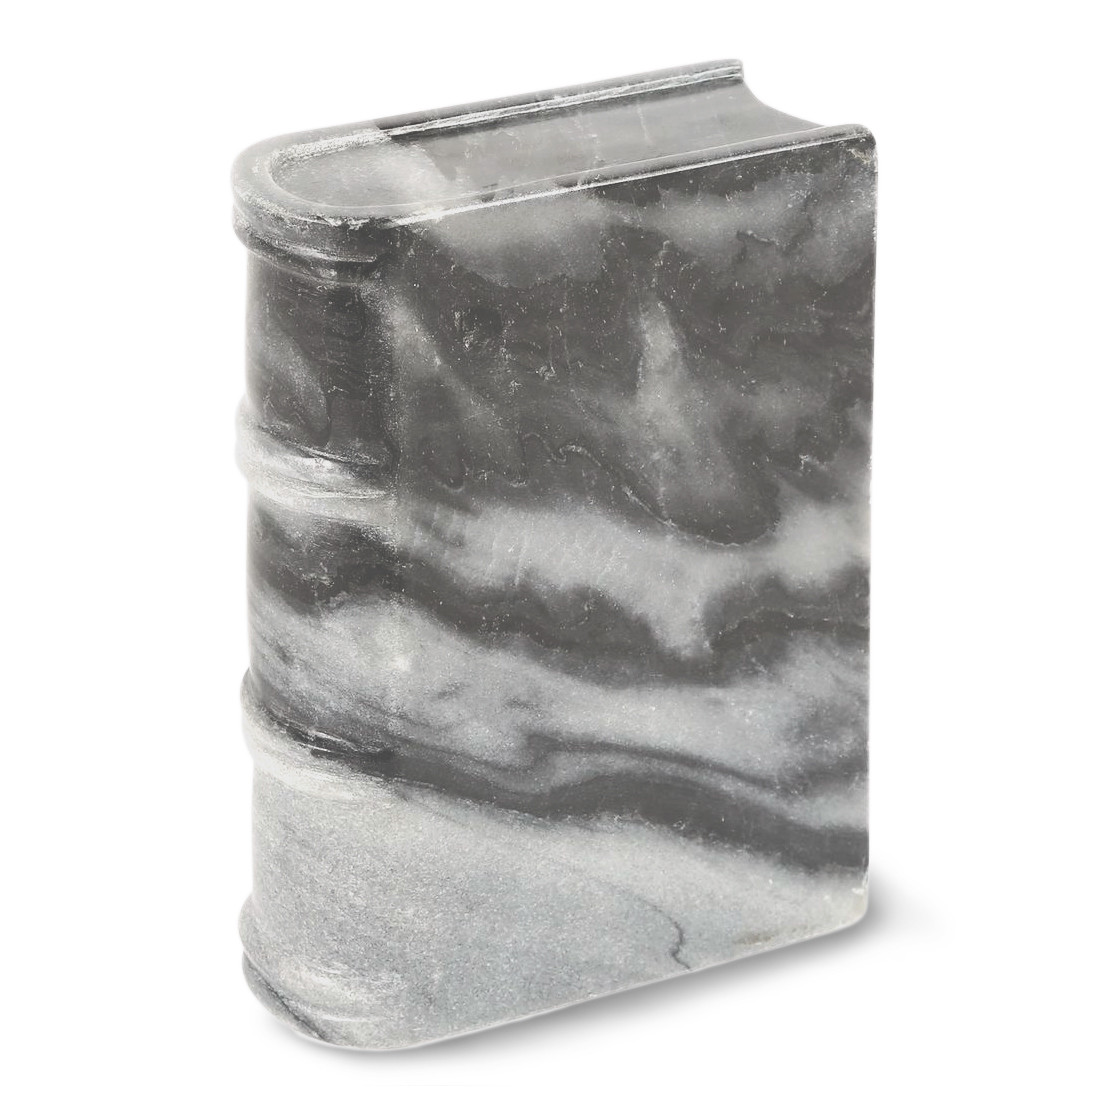 Heavy Weight Door Stop Small Gray Stone Book Weight